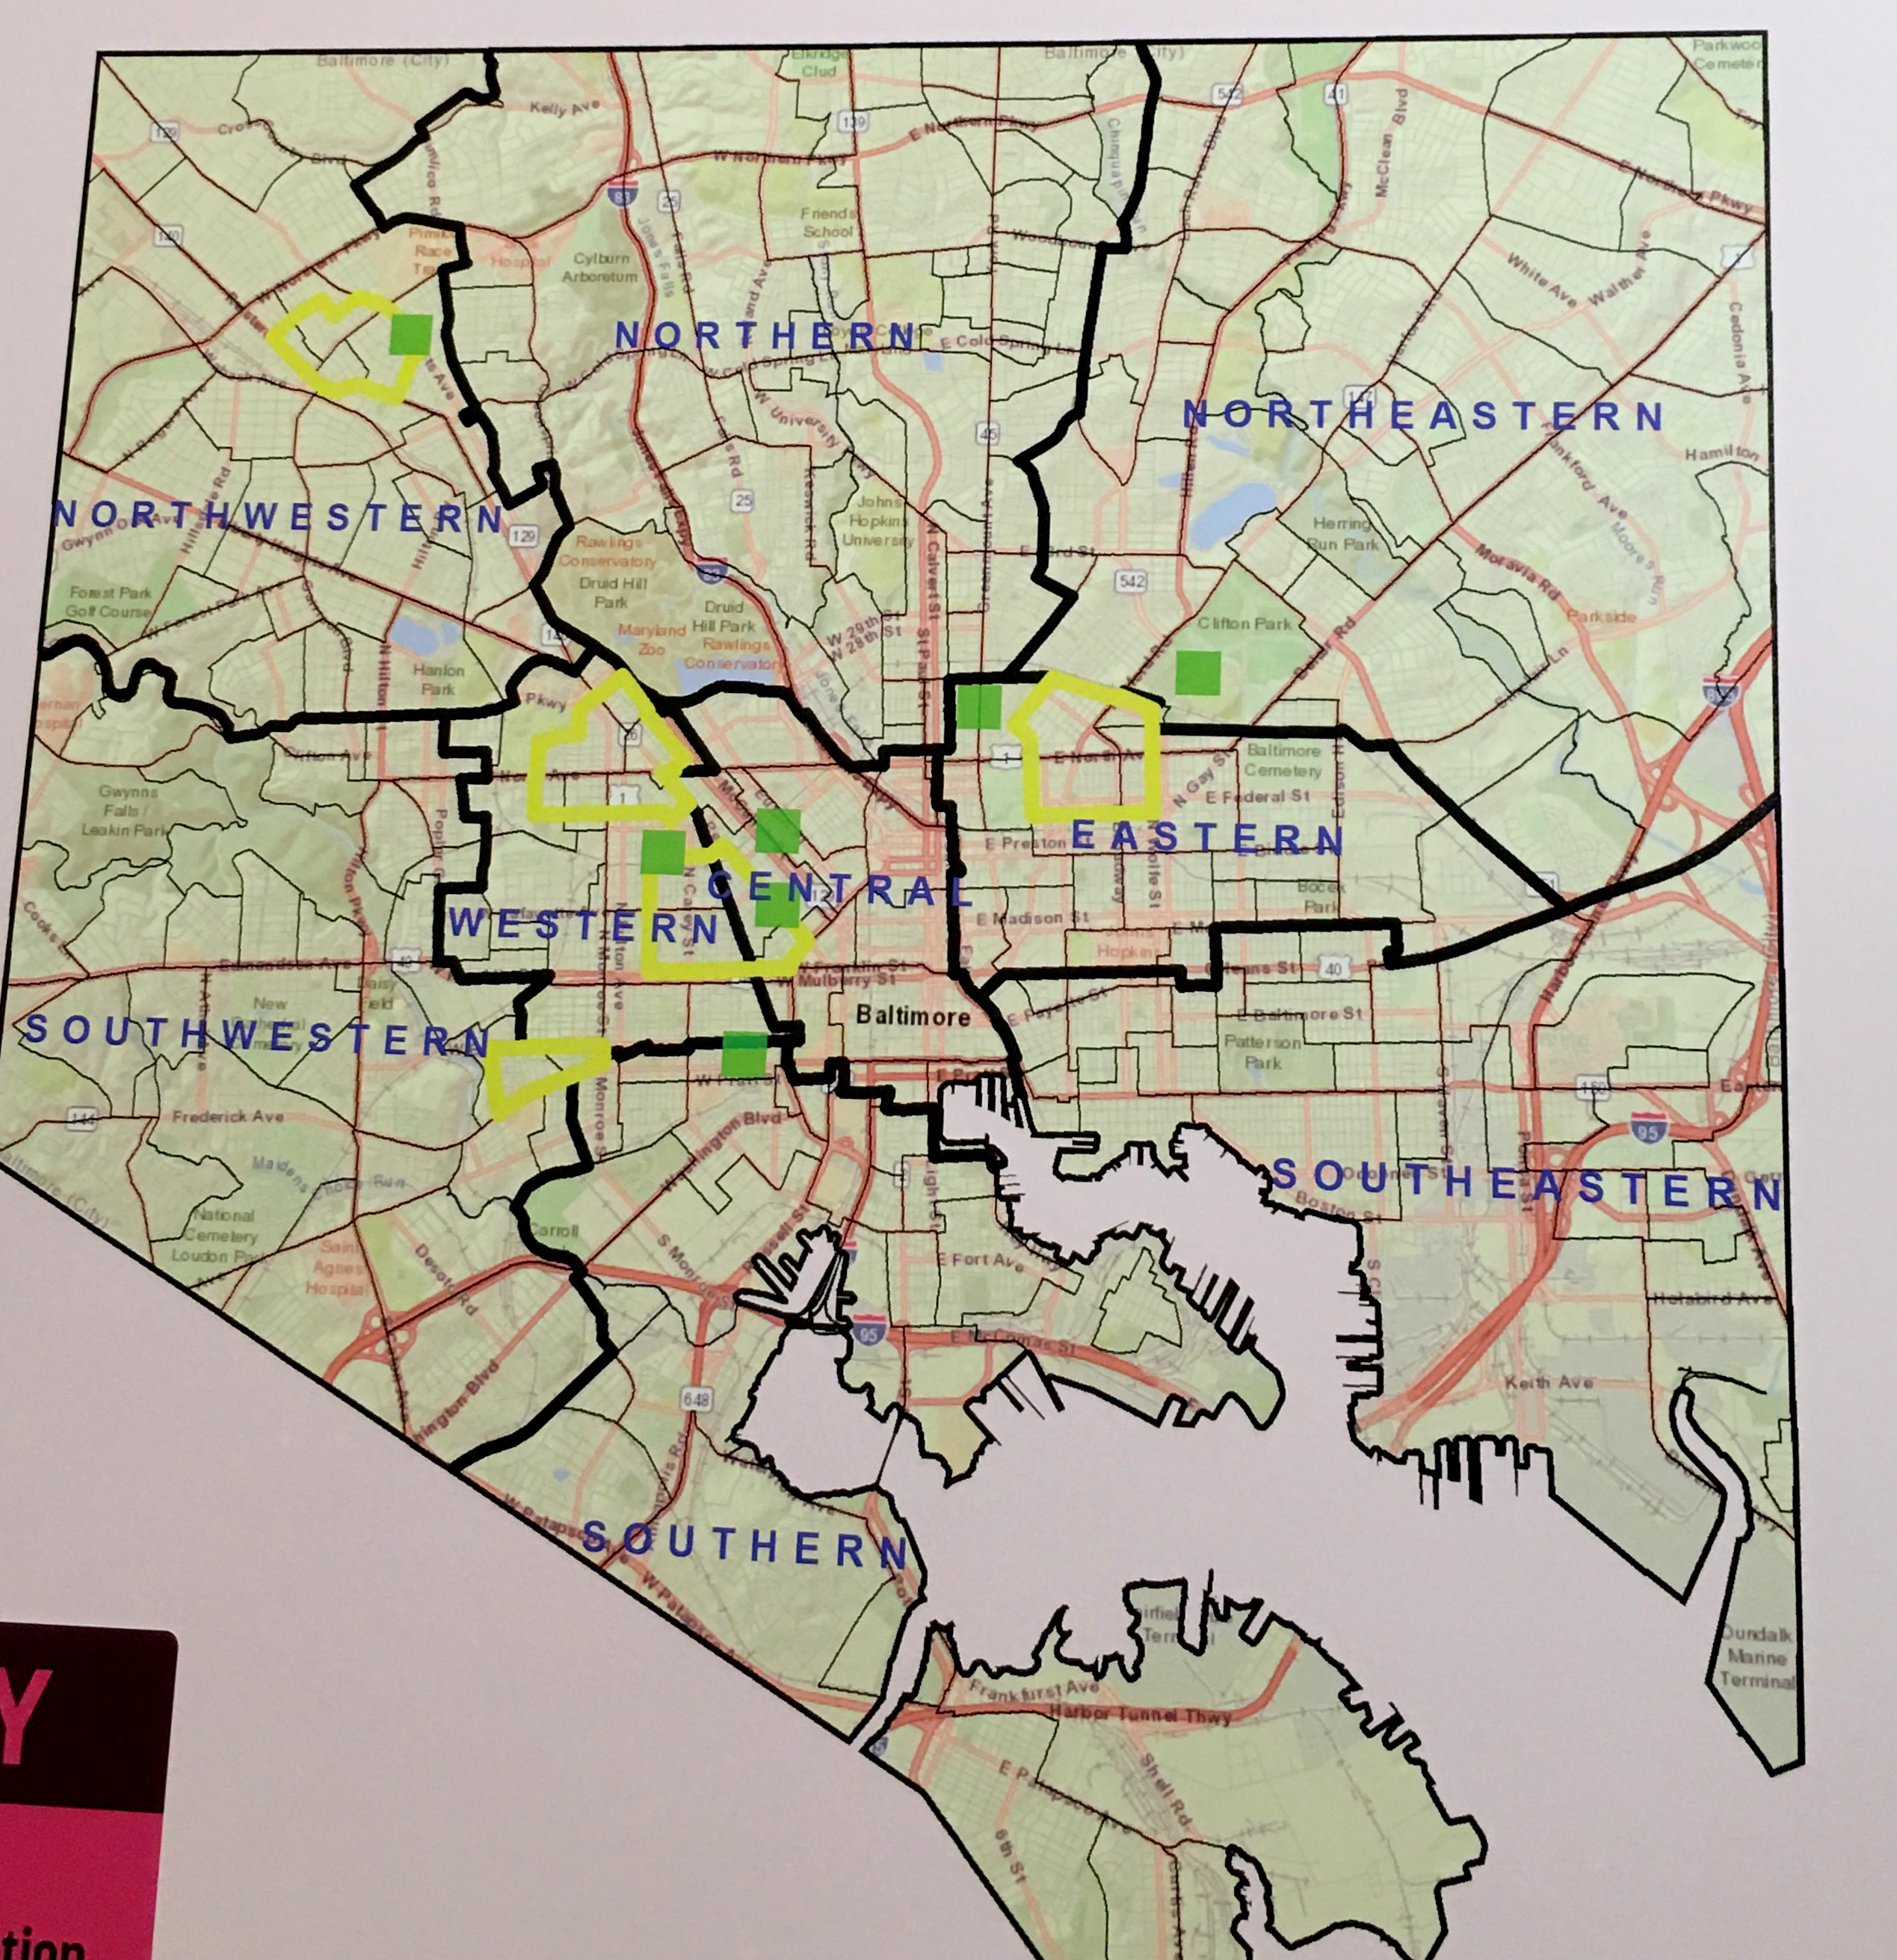 Outlined in yellow, five zones targeted for atention under Mayor Pugh's Multi-Agency Initiative to reduce crime.